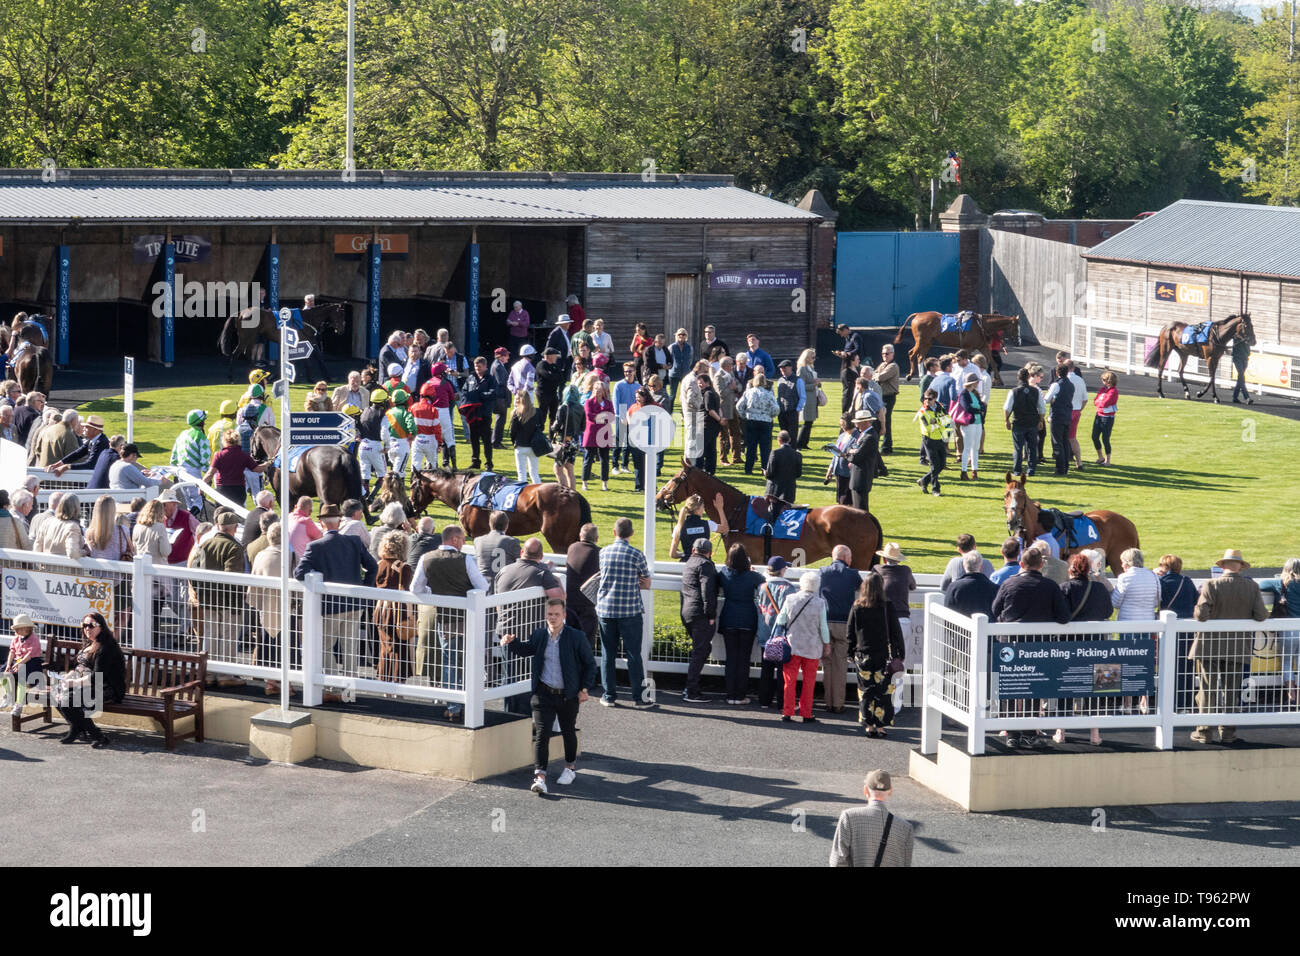 The Parade Ring at Newton Abbot horse racing course, Devon, UK. Stock Photo